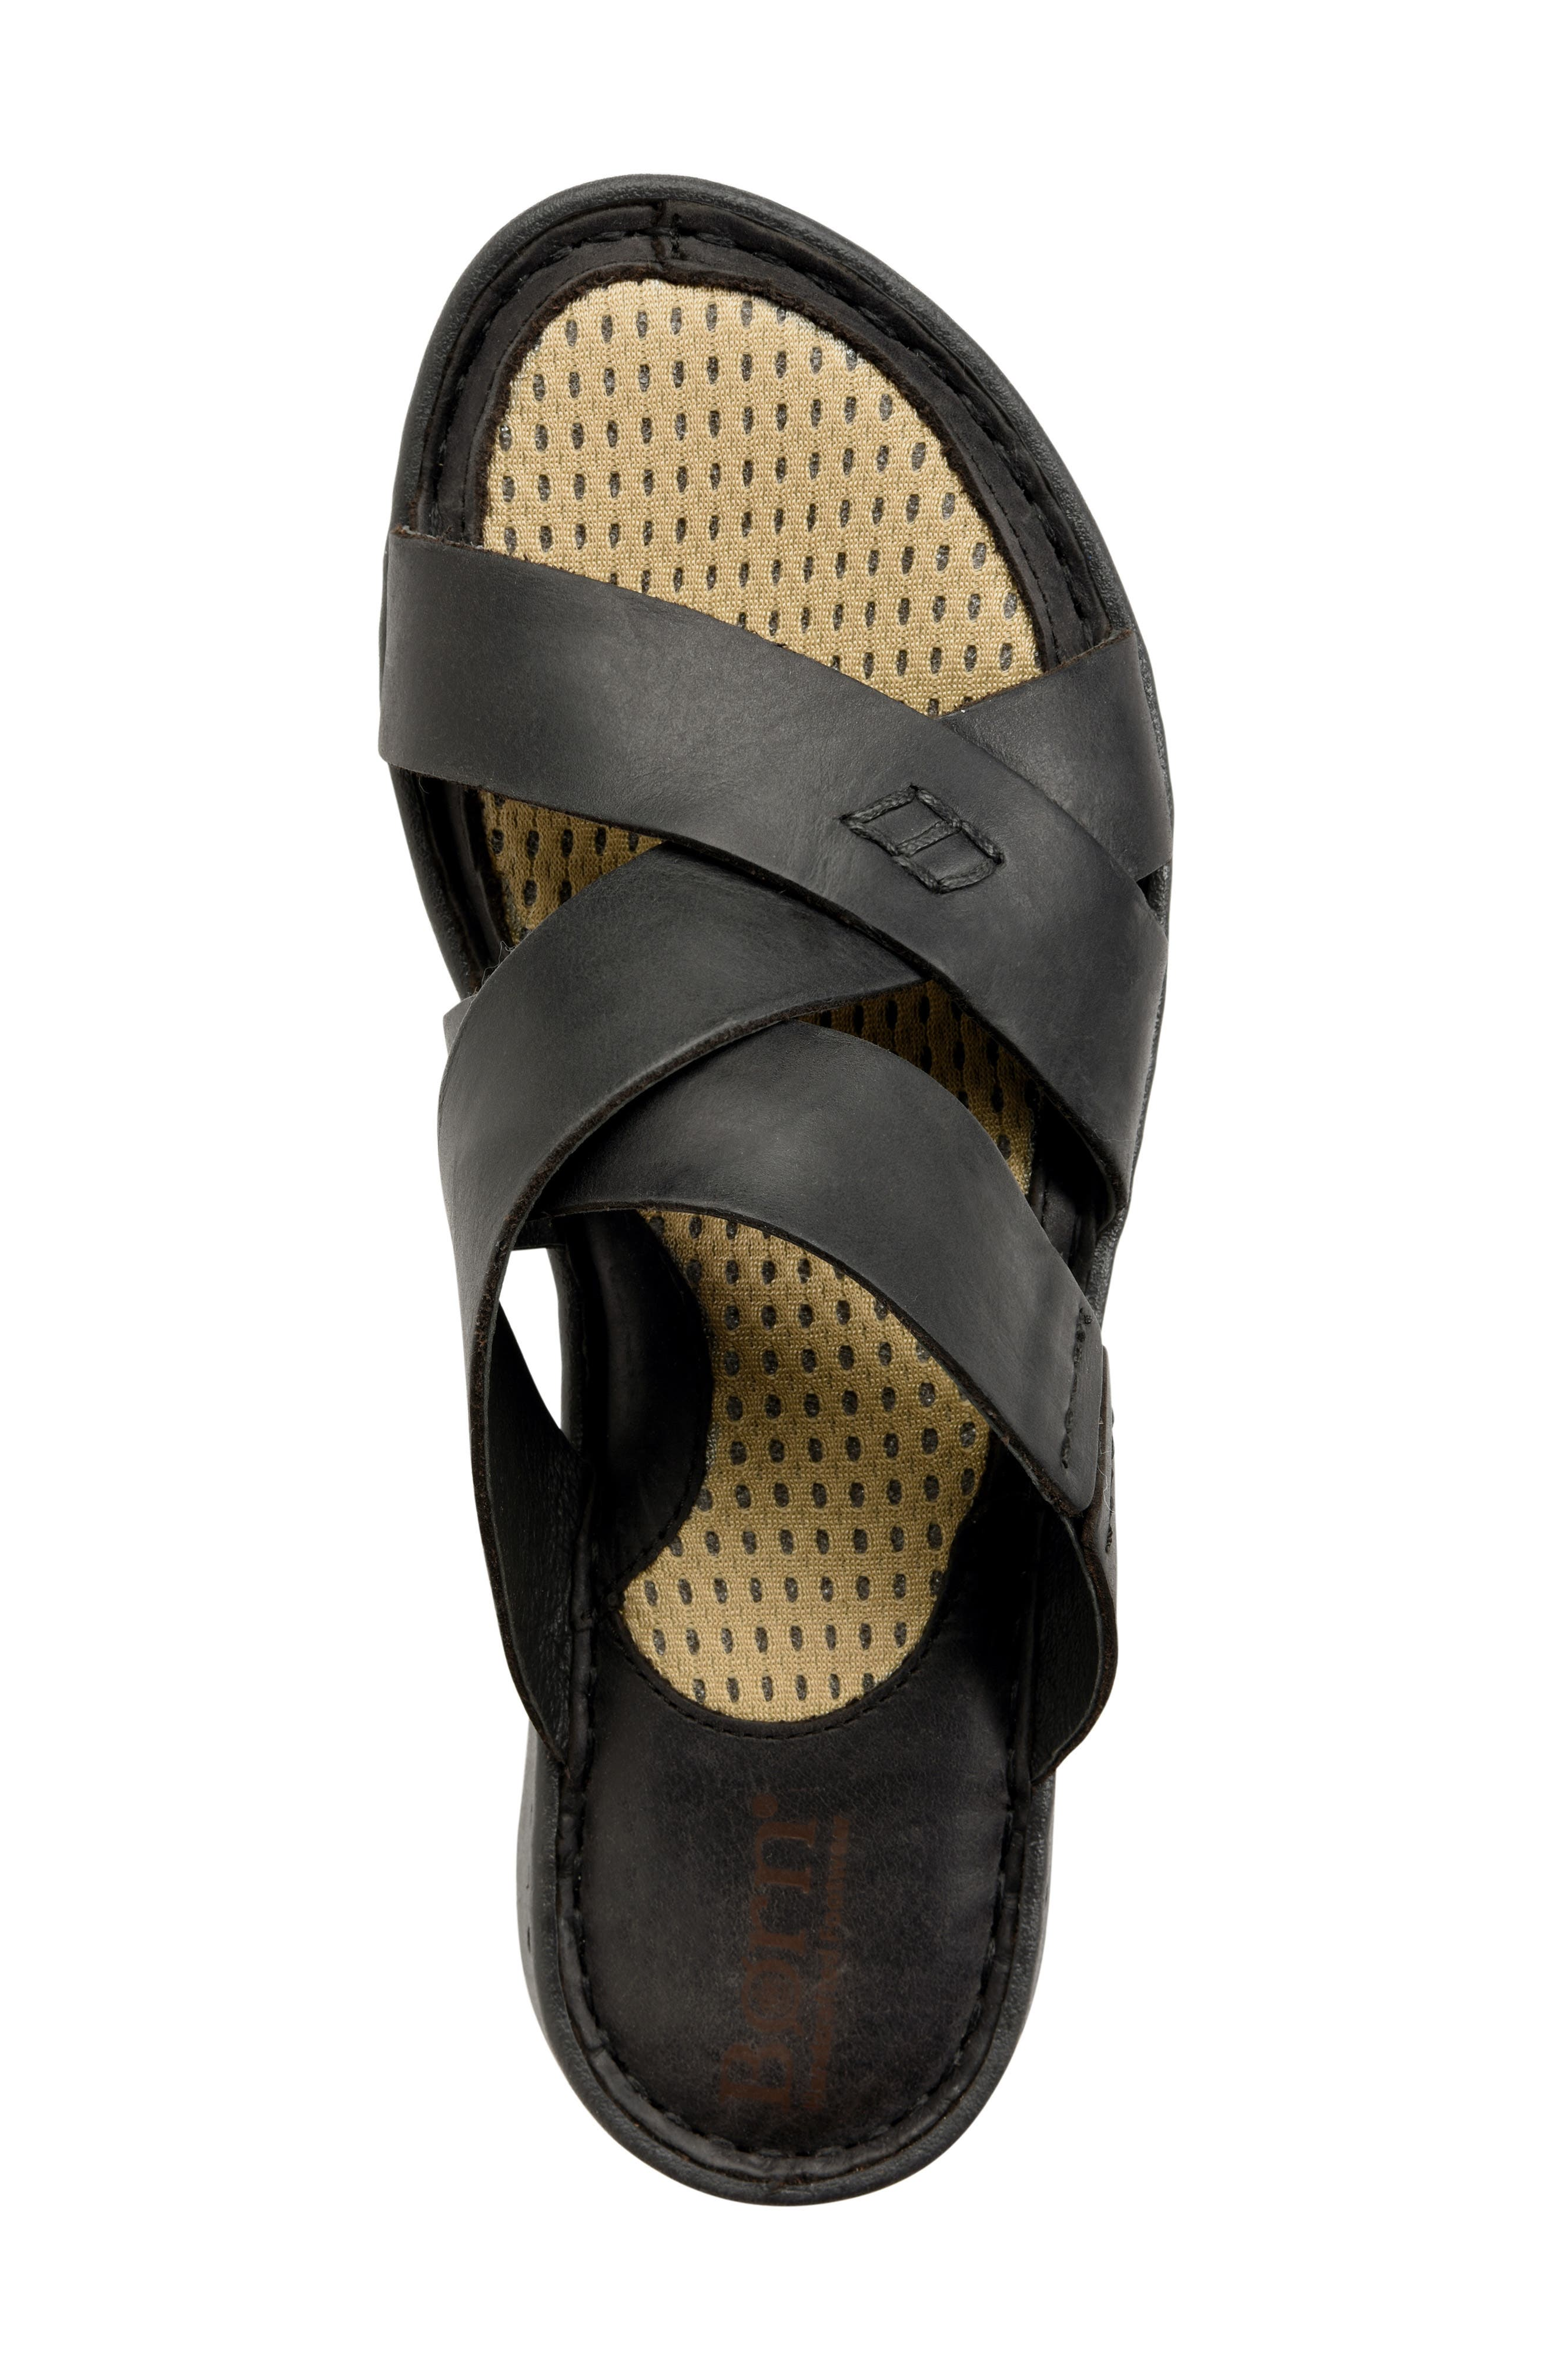 Hayka Asymmetrical Slide Sandal,                             Alternate thumbnail 5, color,                             BLACK LEATHER